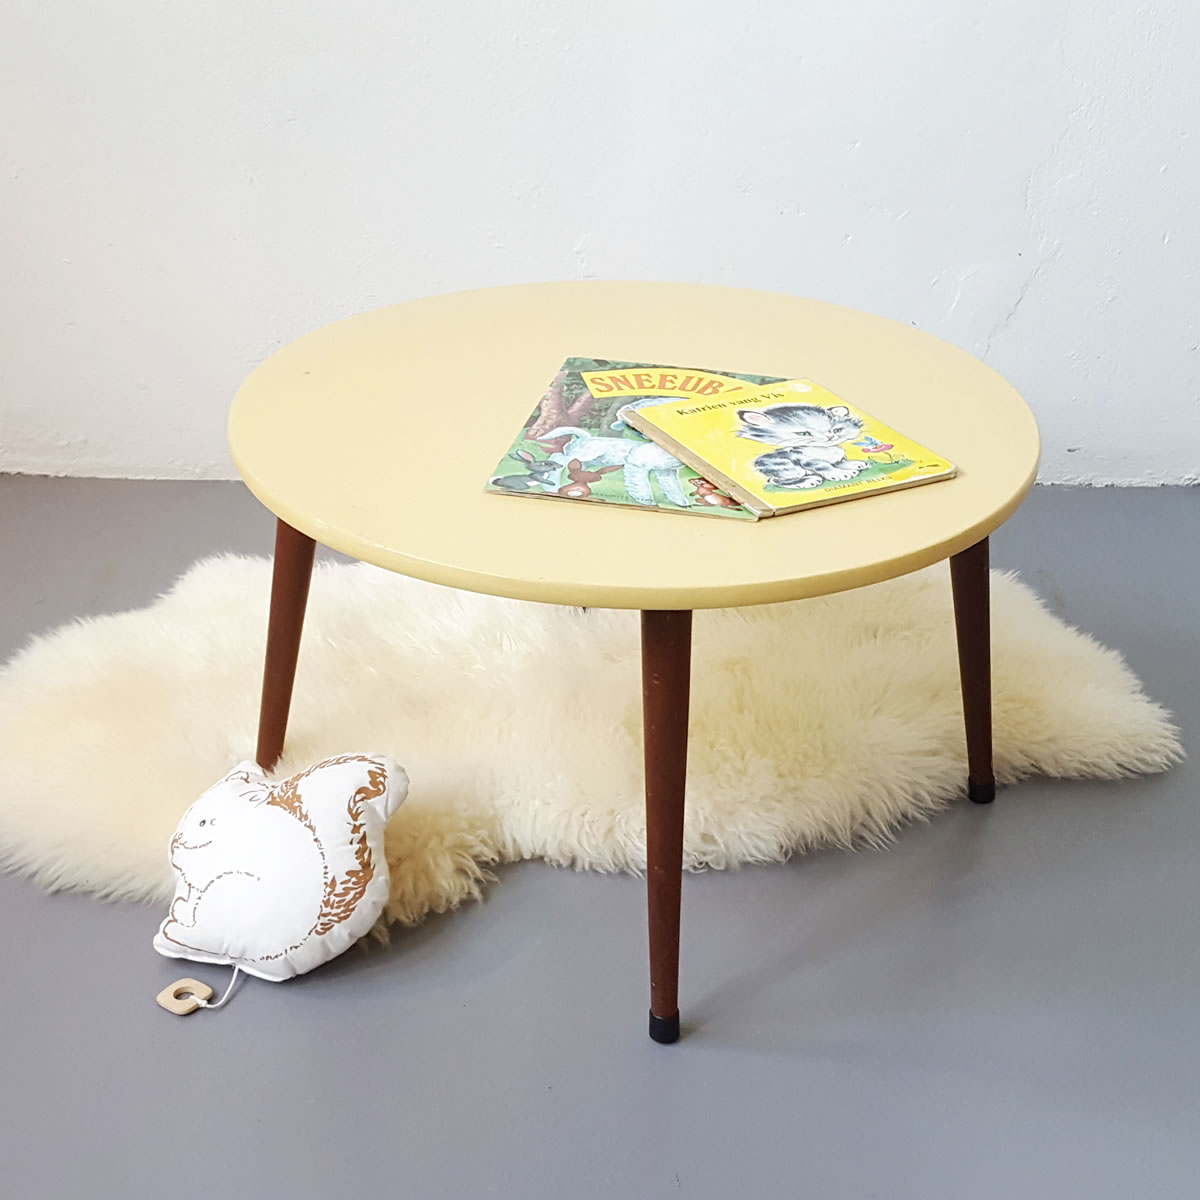 Round Coffee Tables Cape Town: Vintage Pinocchio Comes To Life LP